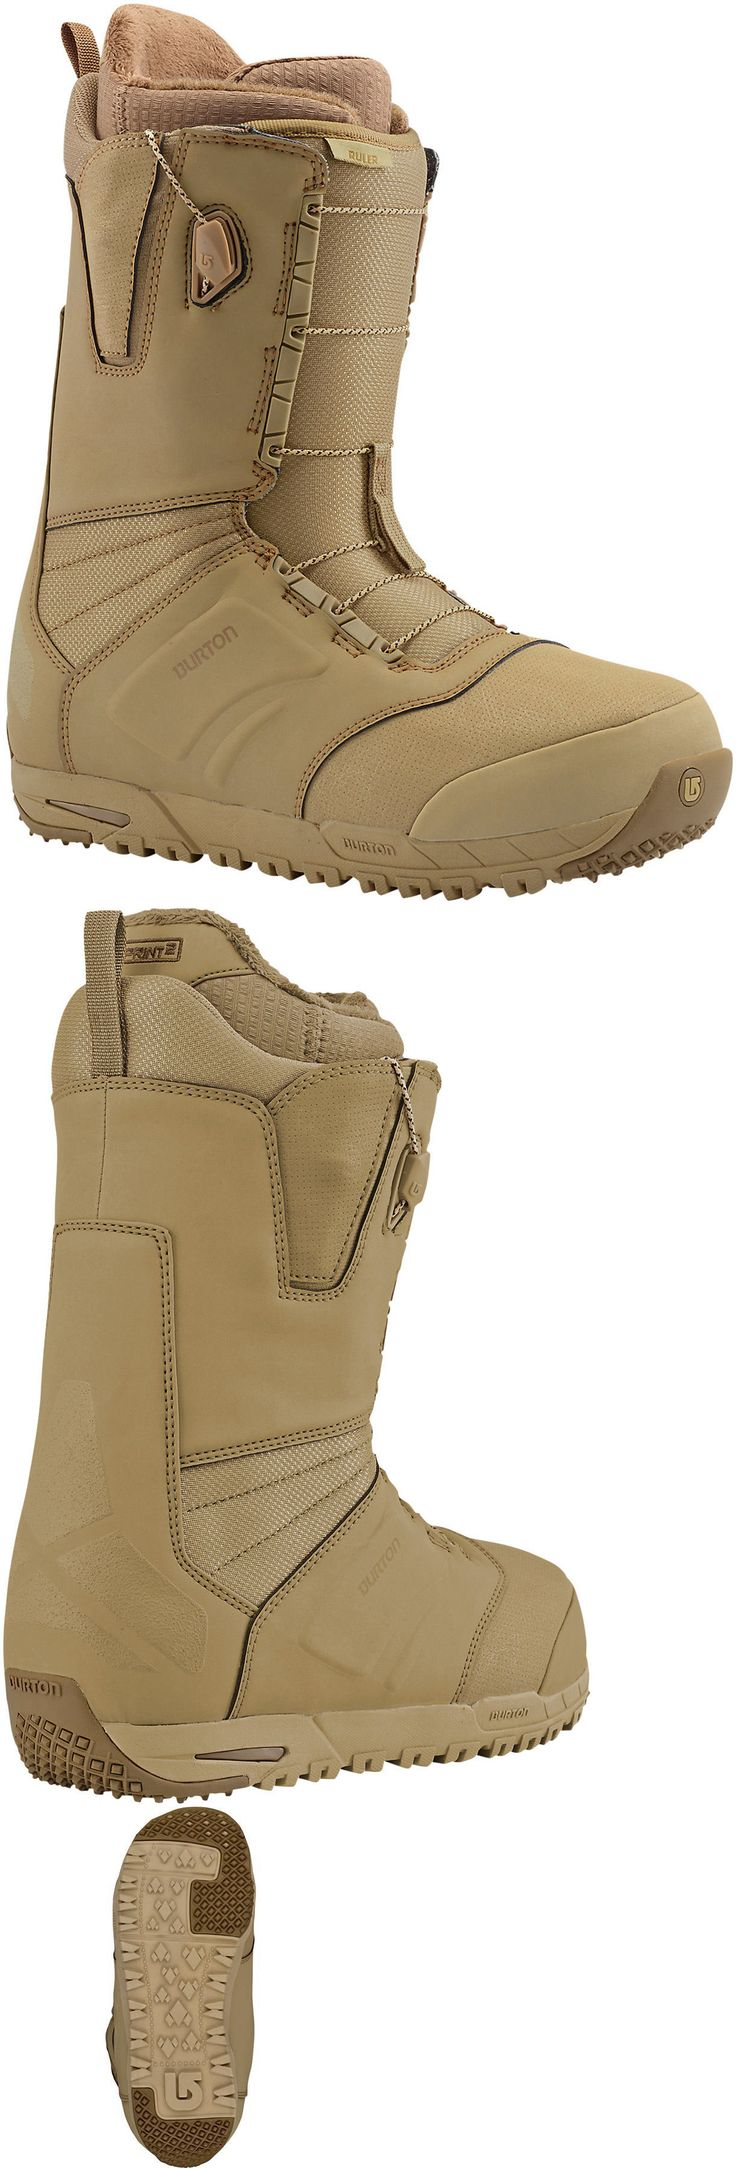 Boots 36292: 2017 Men S Burton Ruler Snowboard Boots Militant Tan -> BUY IT NOW ONLY: $180 on eBay!